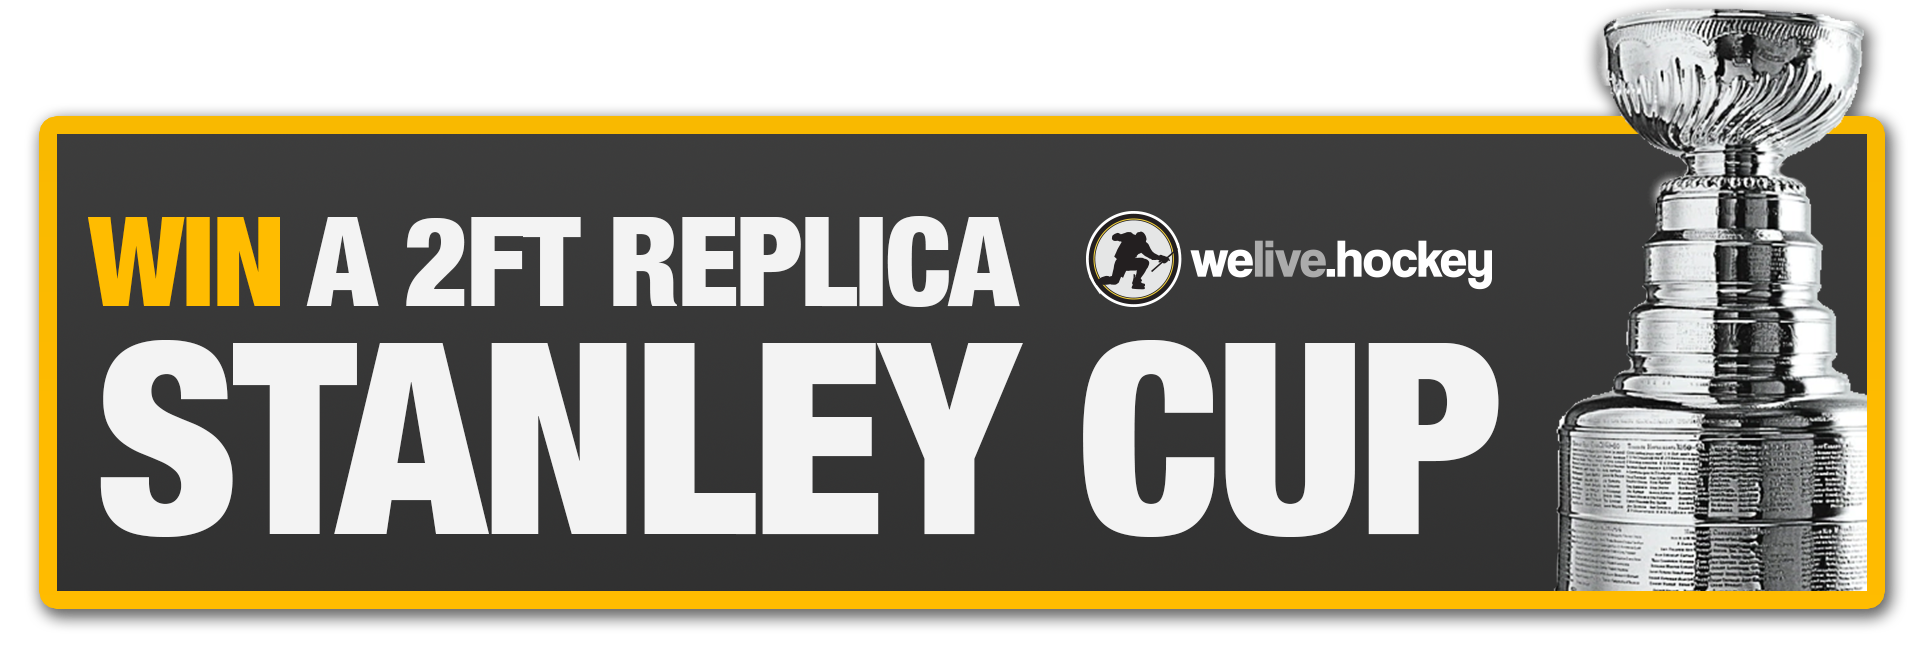 Don't Forget to Enter To Win a Stanley Cup! -